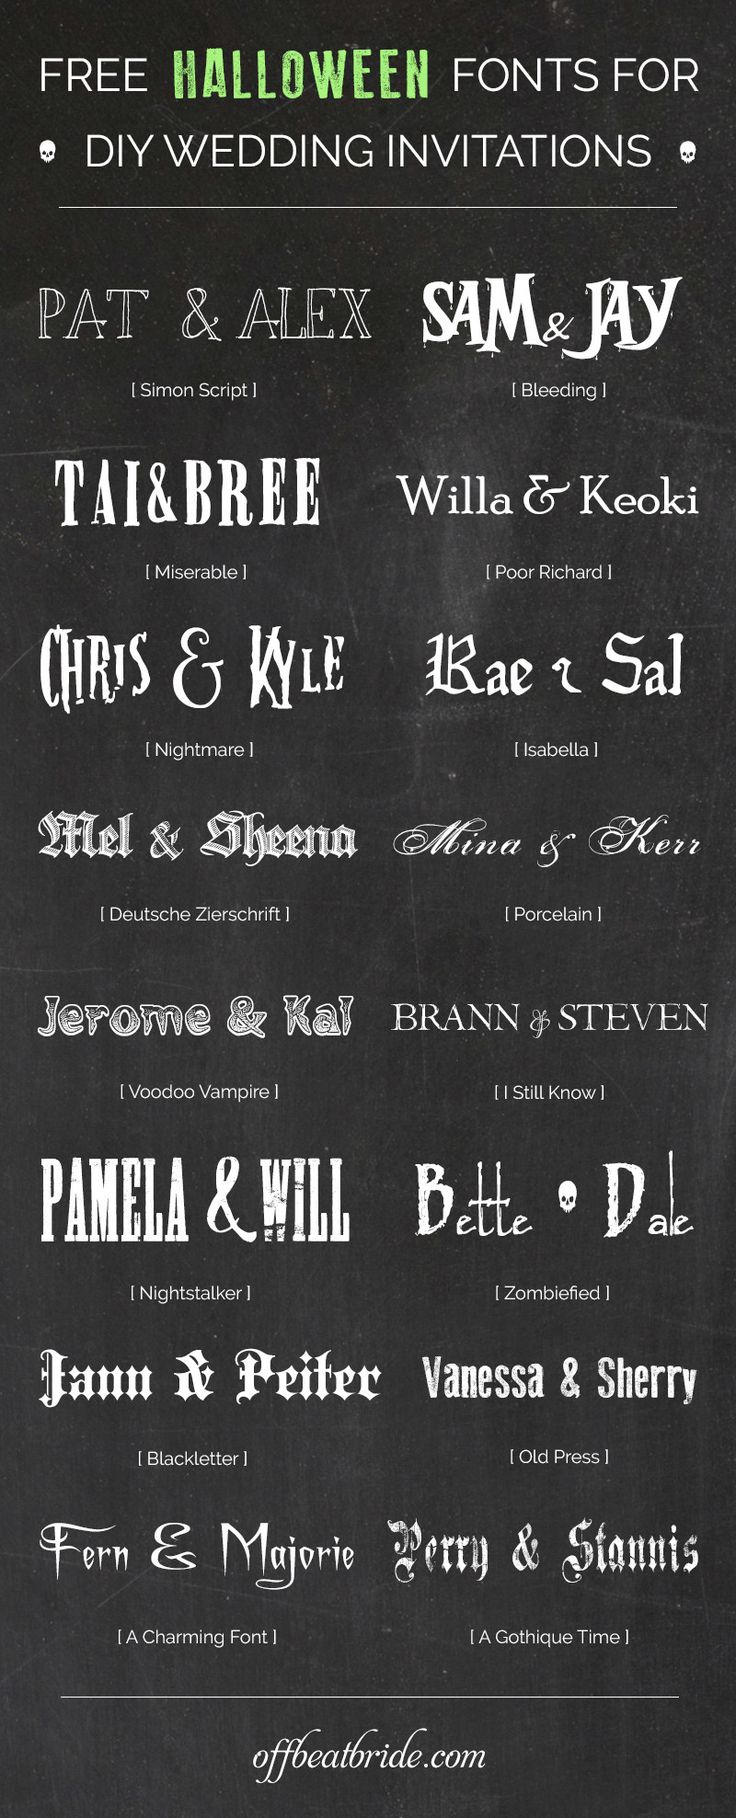 free halloween fonts for scarily good diy wedding invitations - Fonts For Wedding Invitations